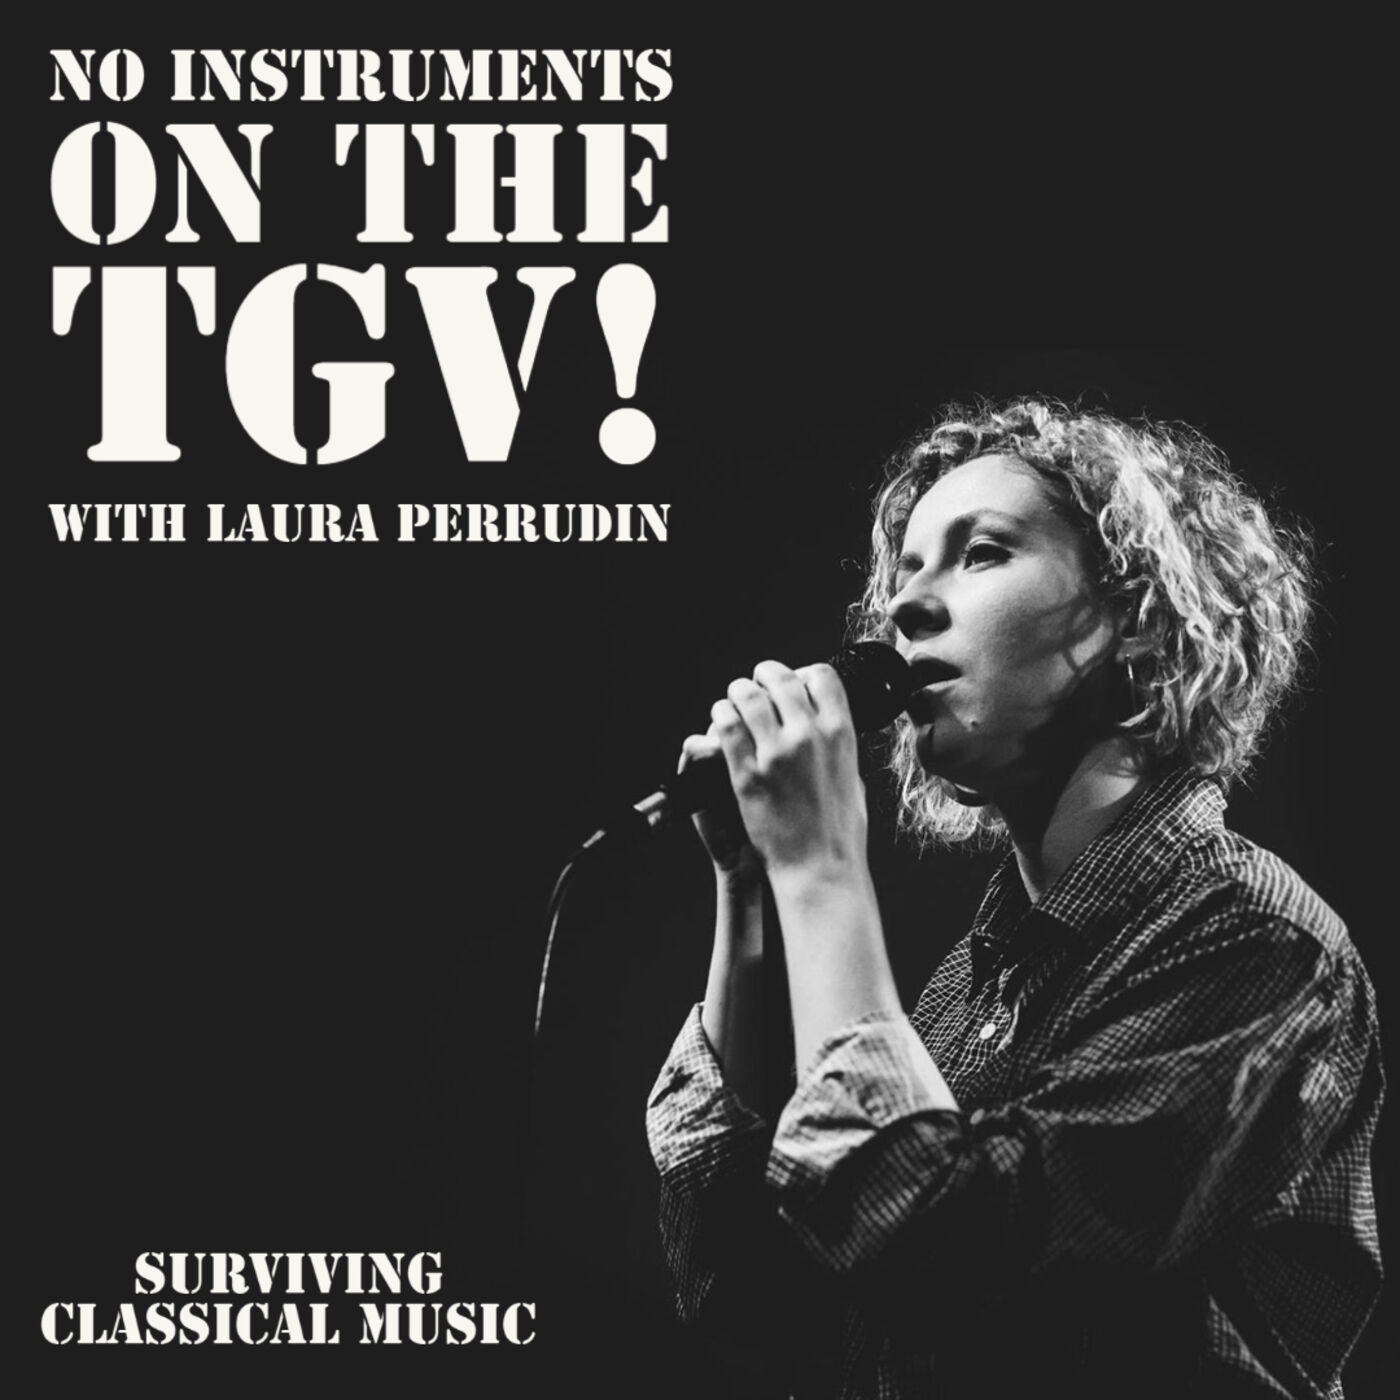 No Instruments on the TGV! with Laura Perrudin